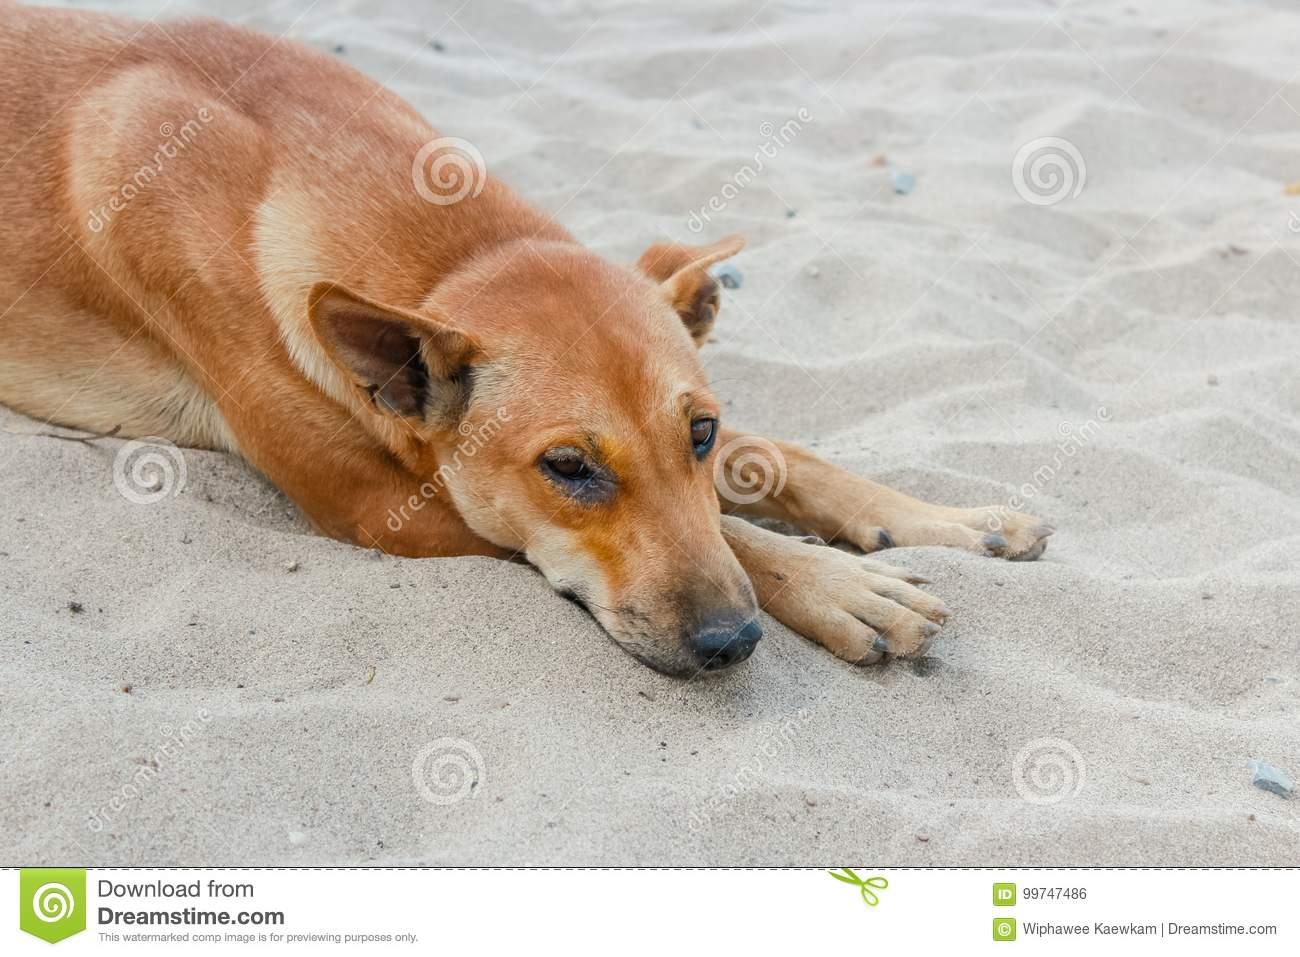 Sick dog lying down on the ground